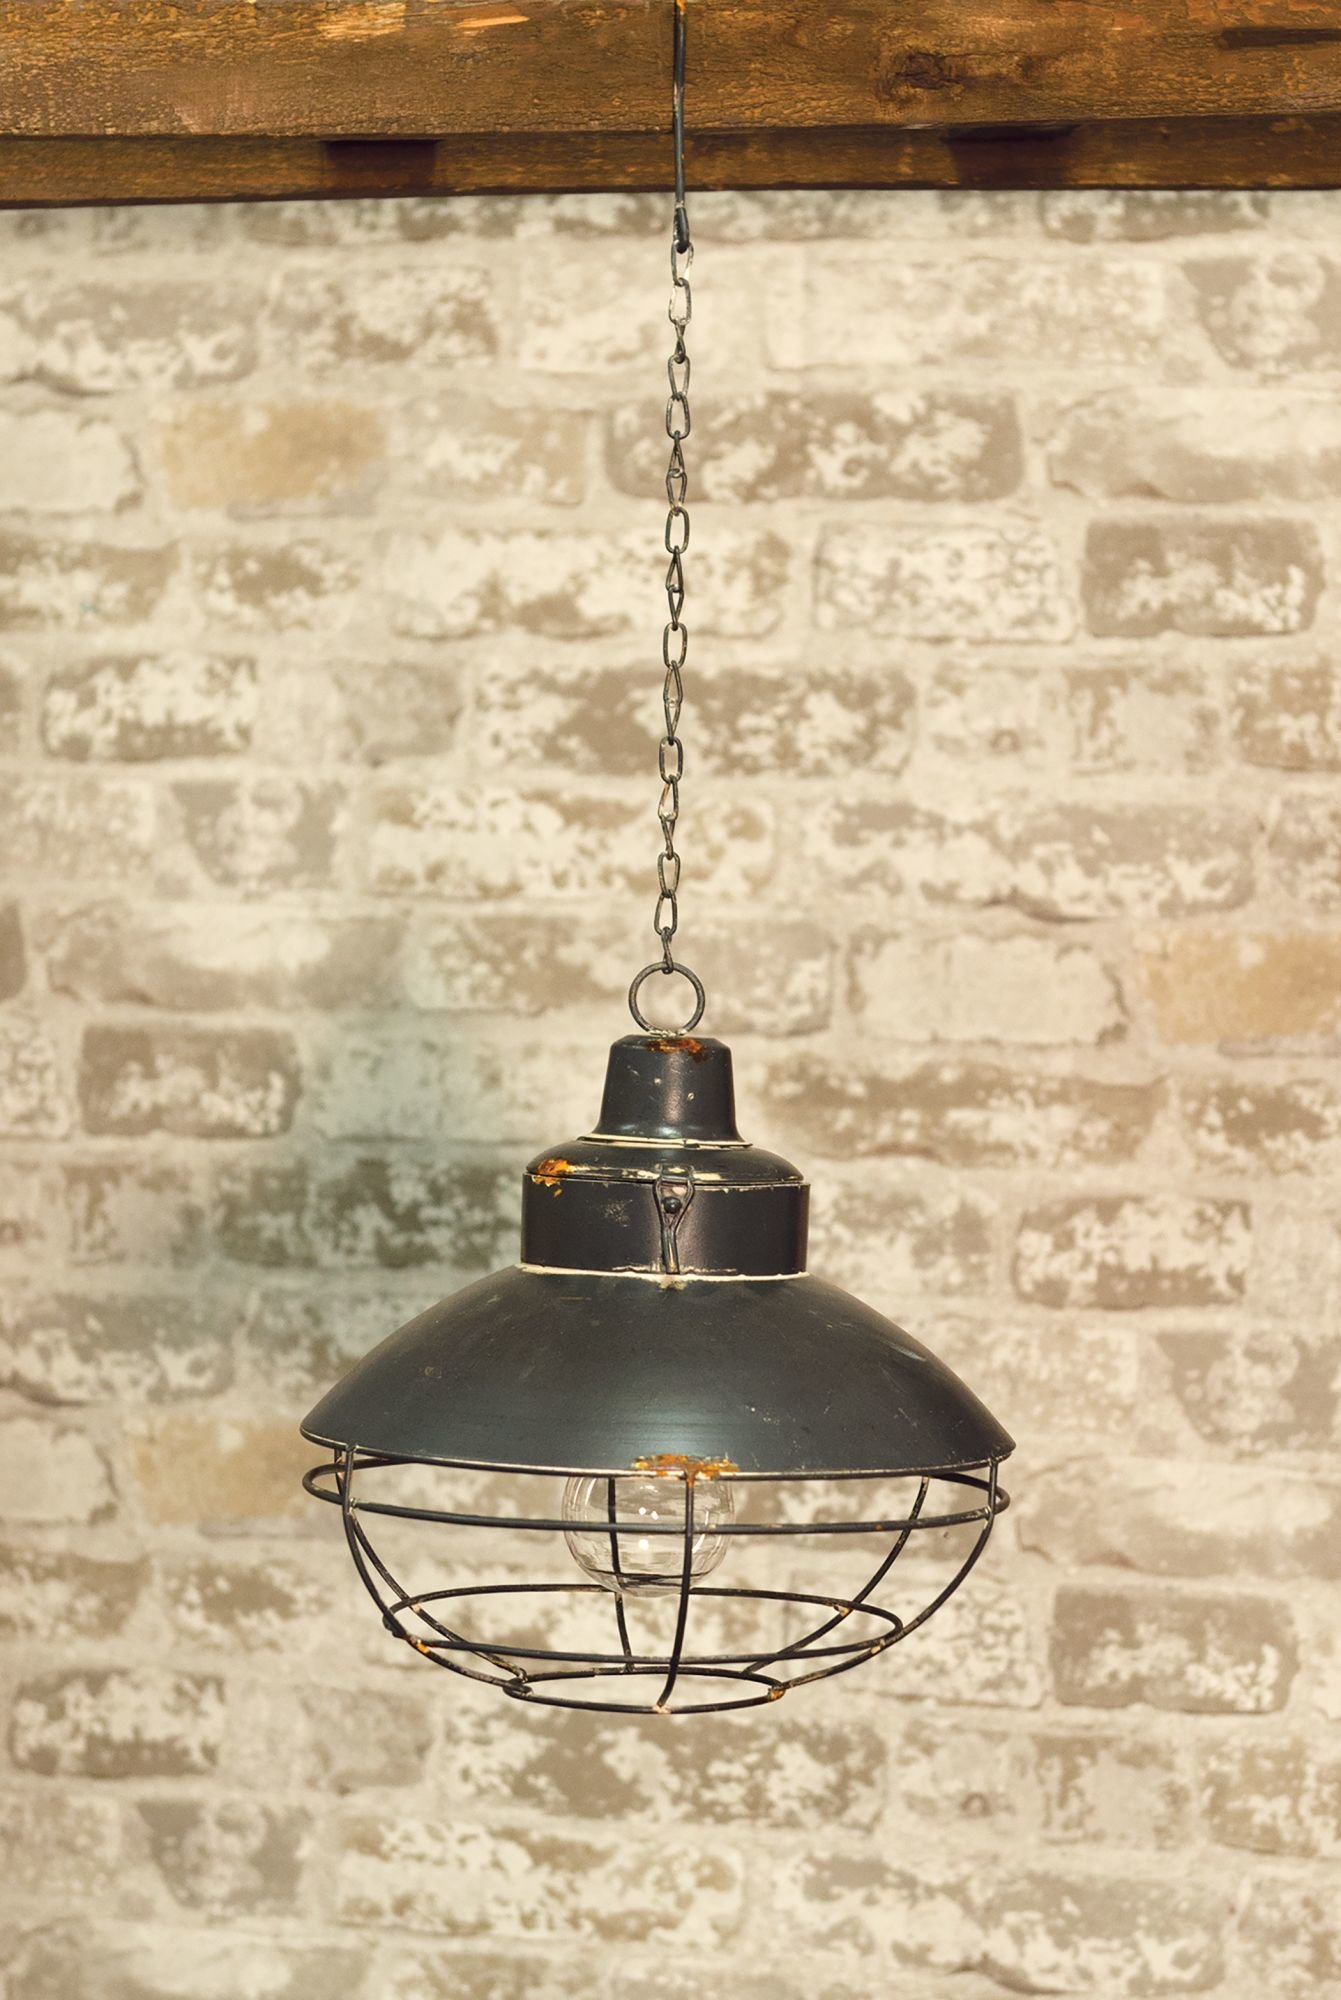 Sorrells 1-Light Single Dome Pendant with regard to 1-Light Single Dome Pendants (Image 27 of 30)